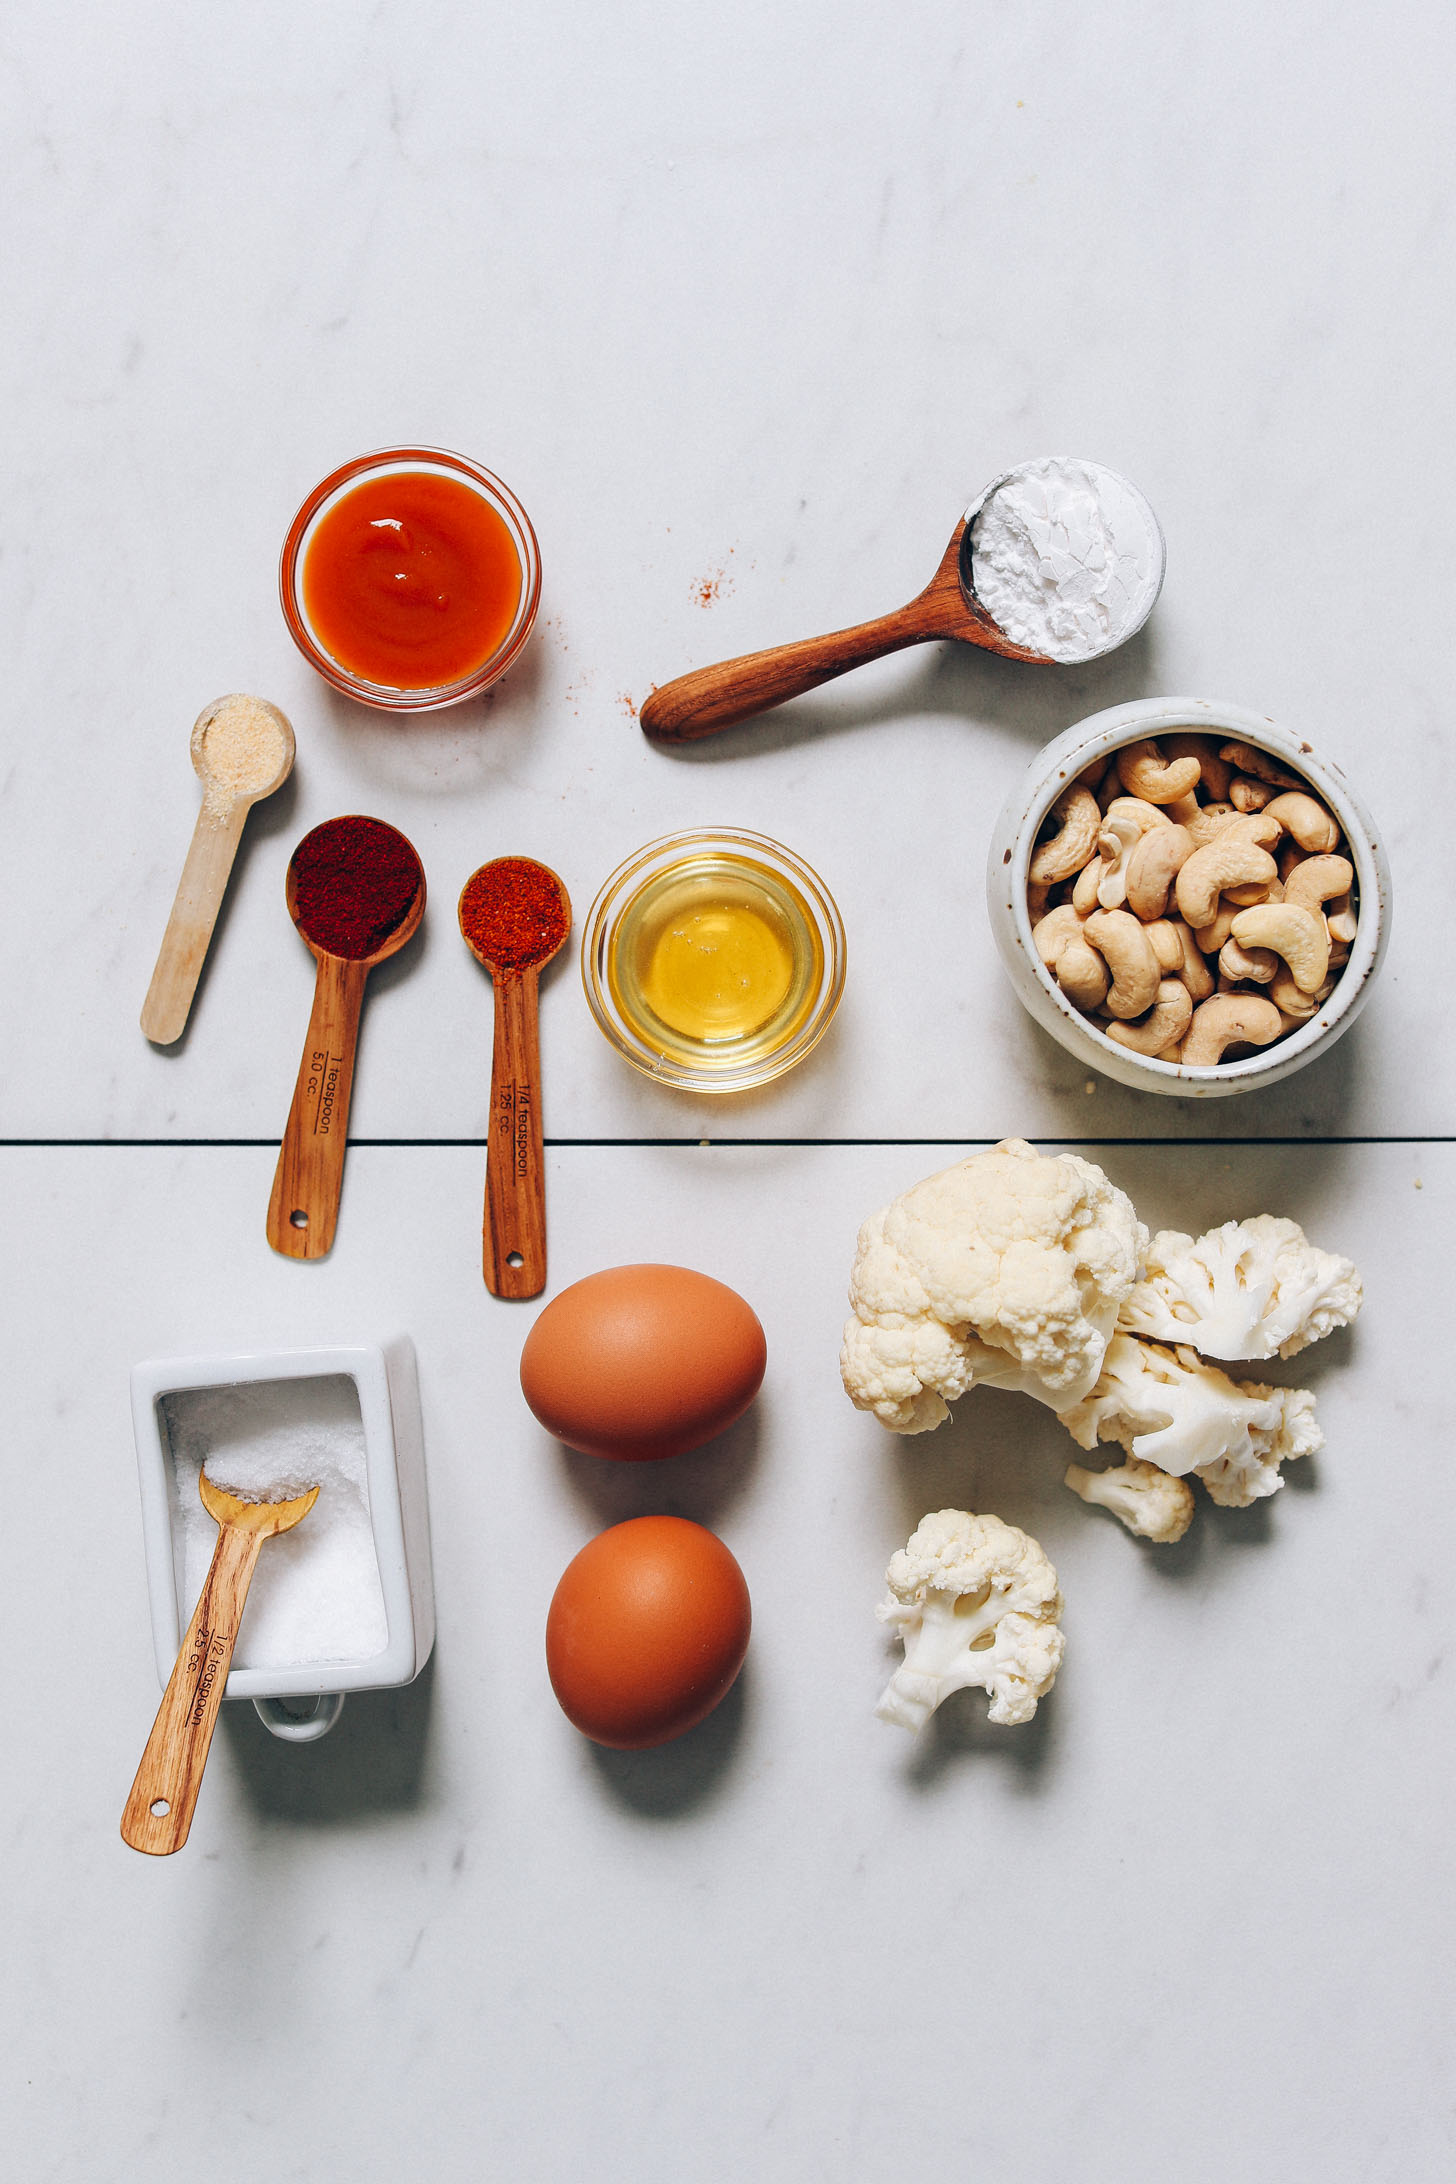 Cauliflower, cashews, eggs, honey, hot sauce, and other ingredients for making our Crispy Breaded Cauliflower recipe